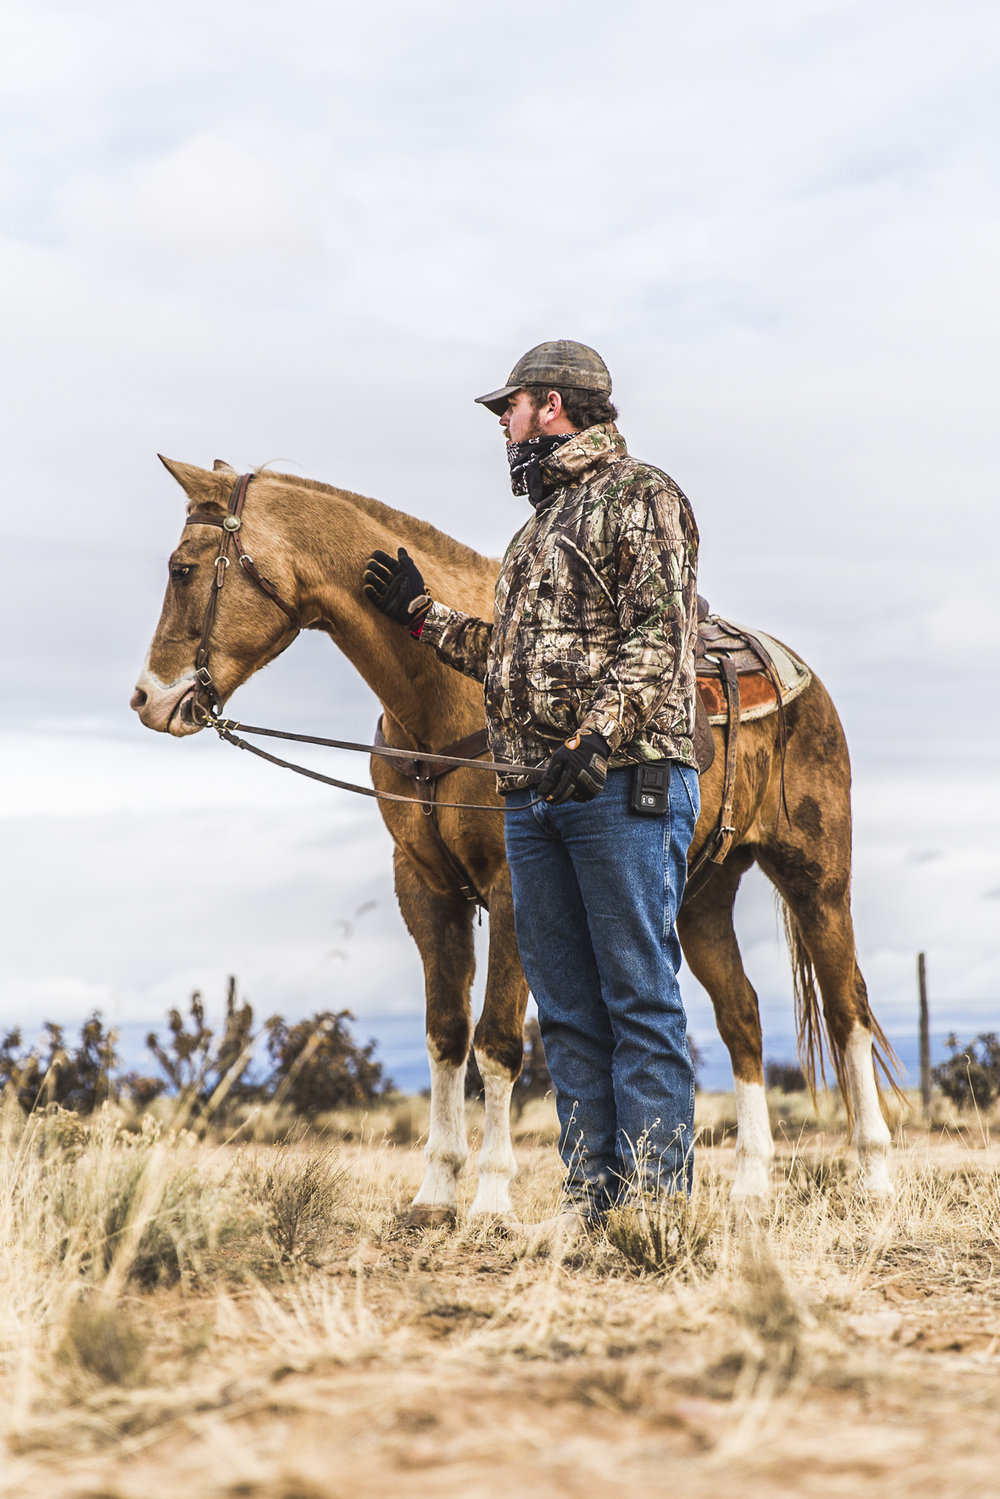 A horse trainer with his best friend and only companion while living on rural tribal land in New Mexico. Our trainer is training his horse to hopefully work in the booming film industry in New Mexico.